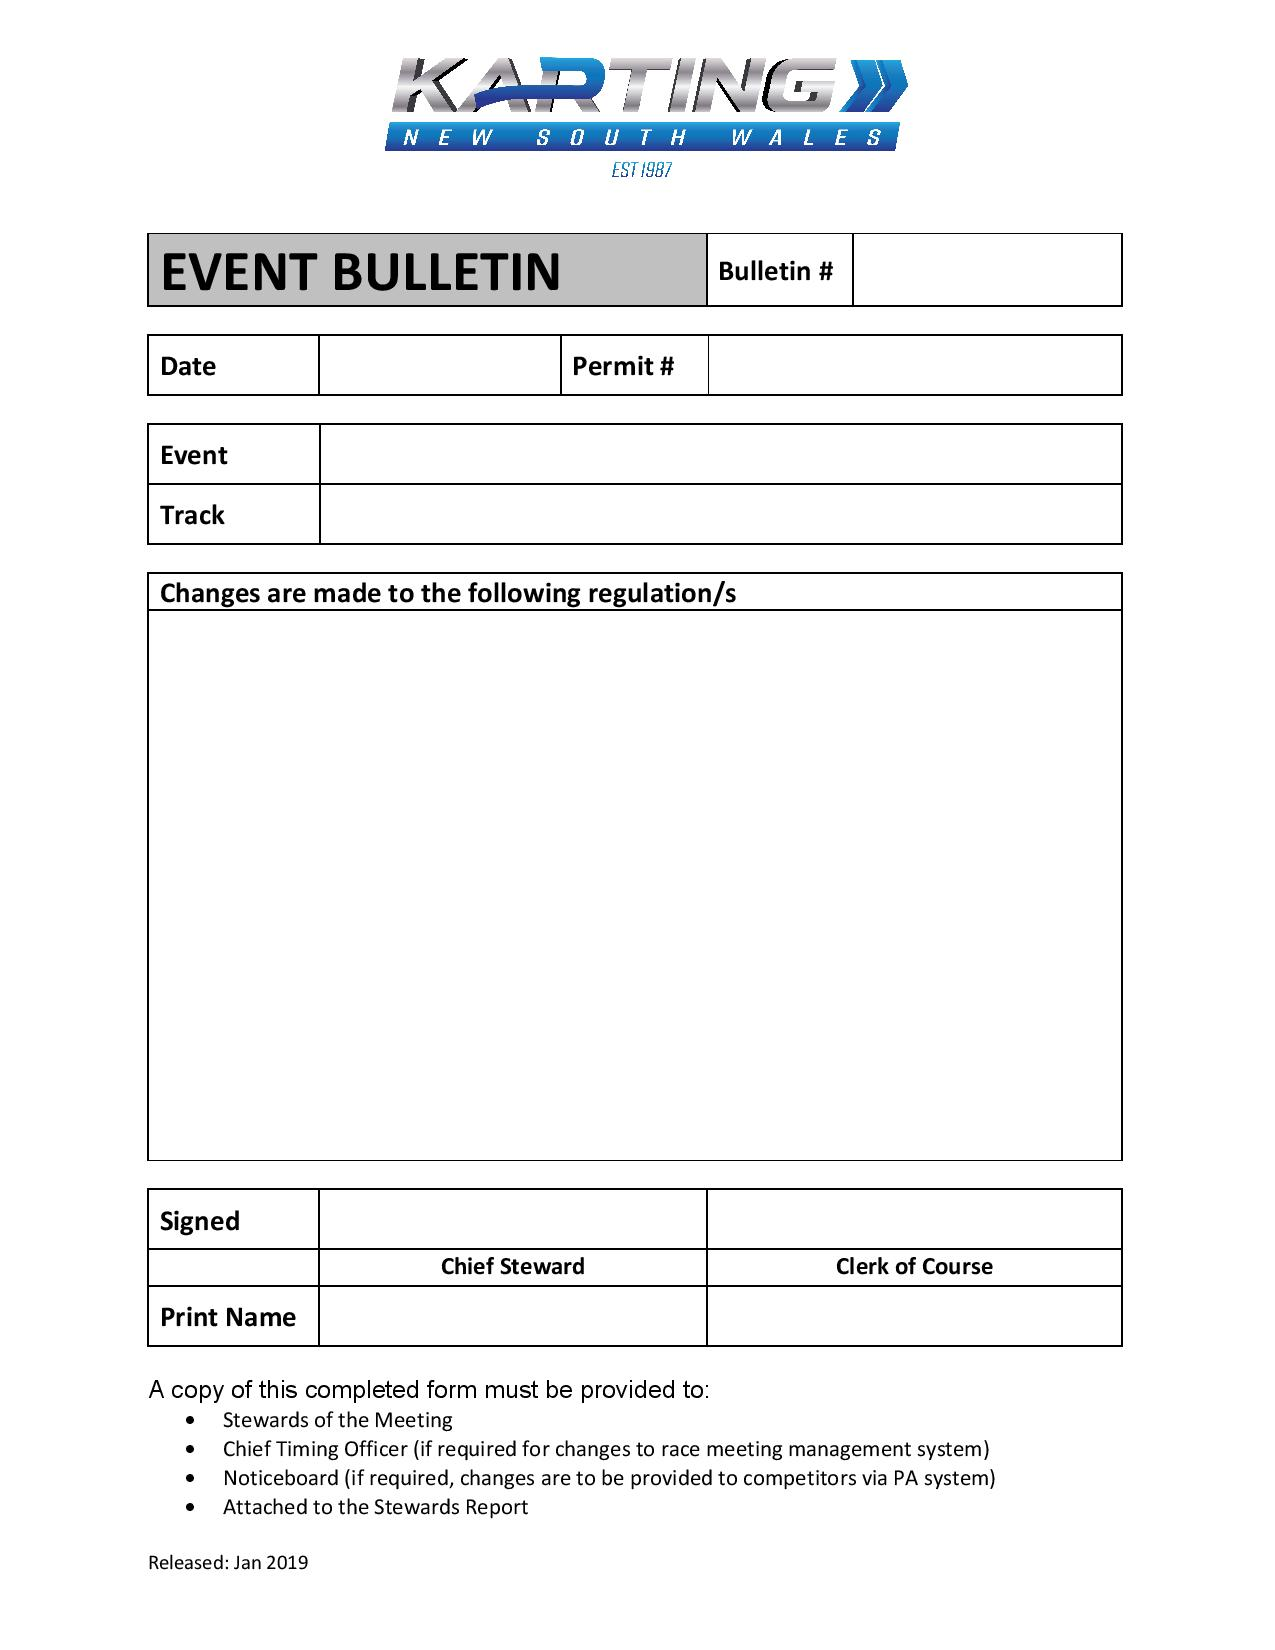 Event Bulletin Form